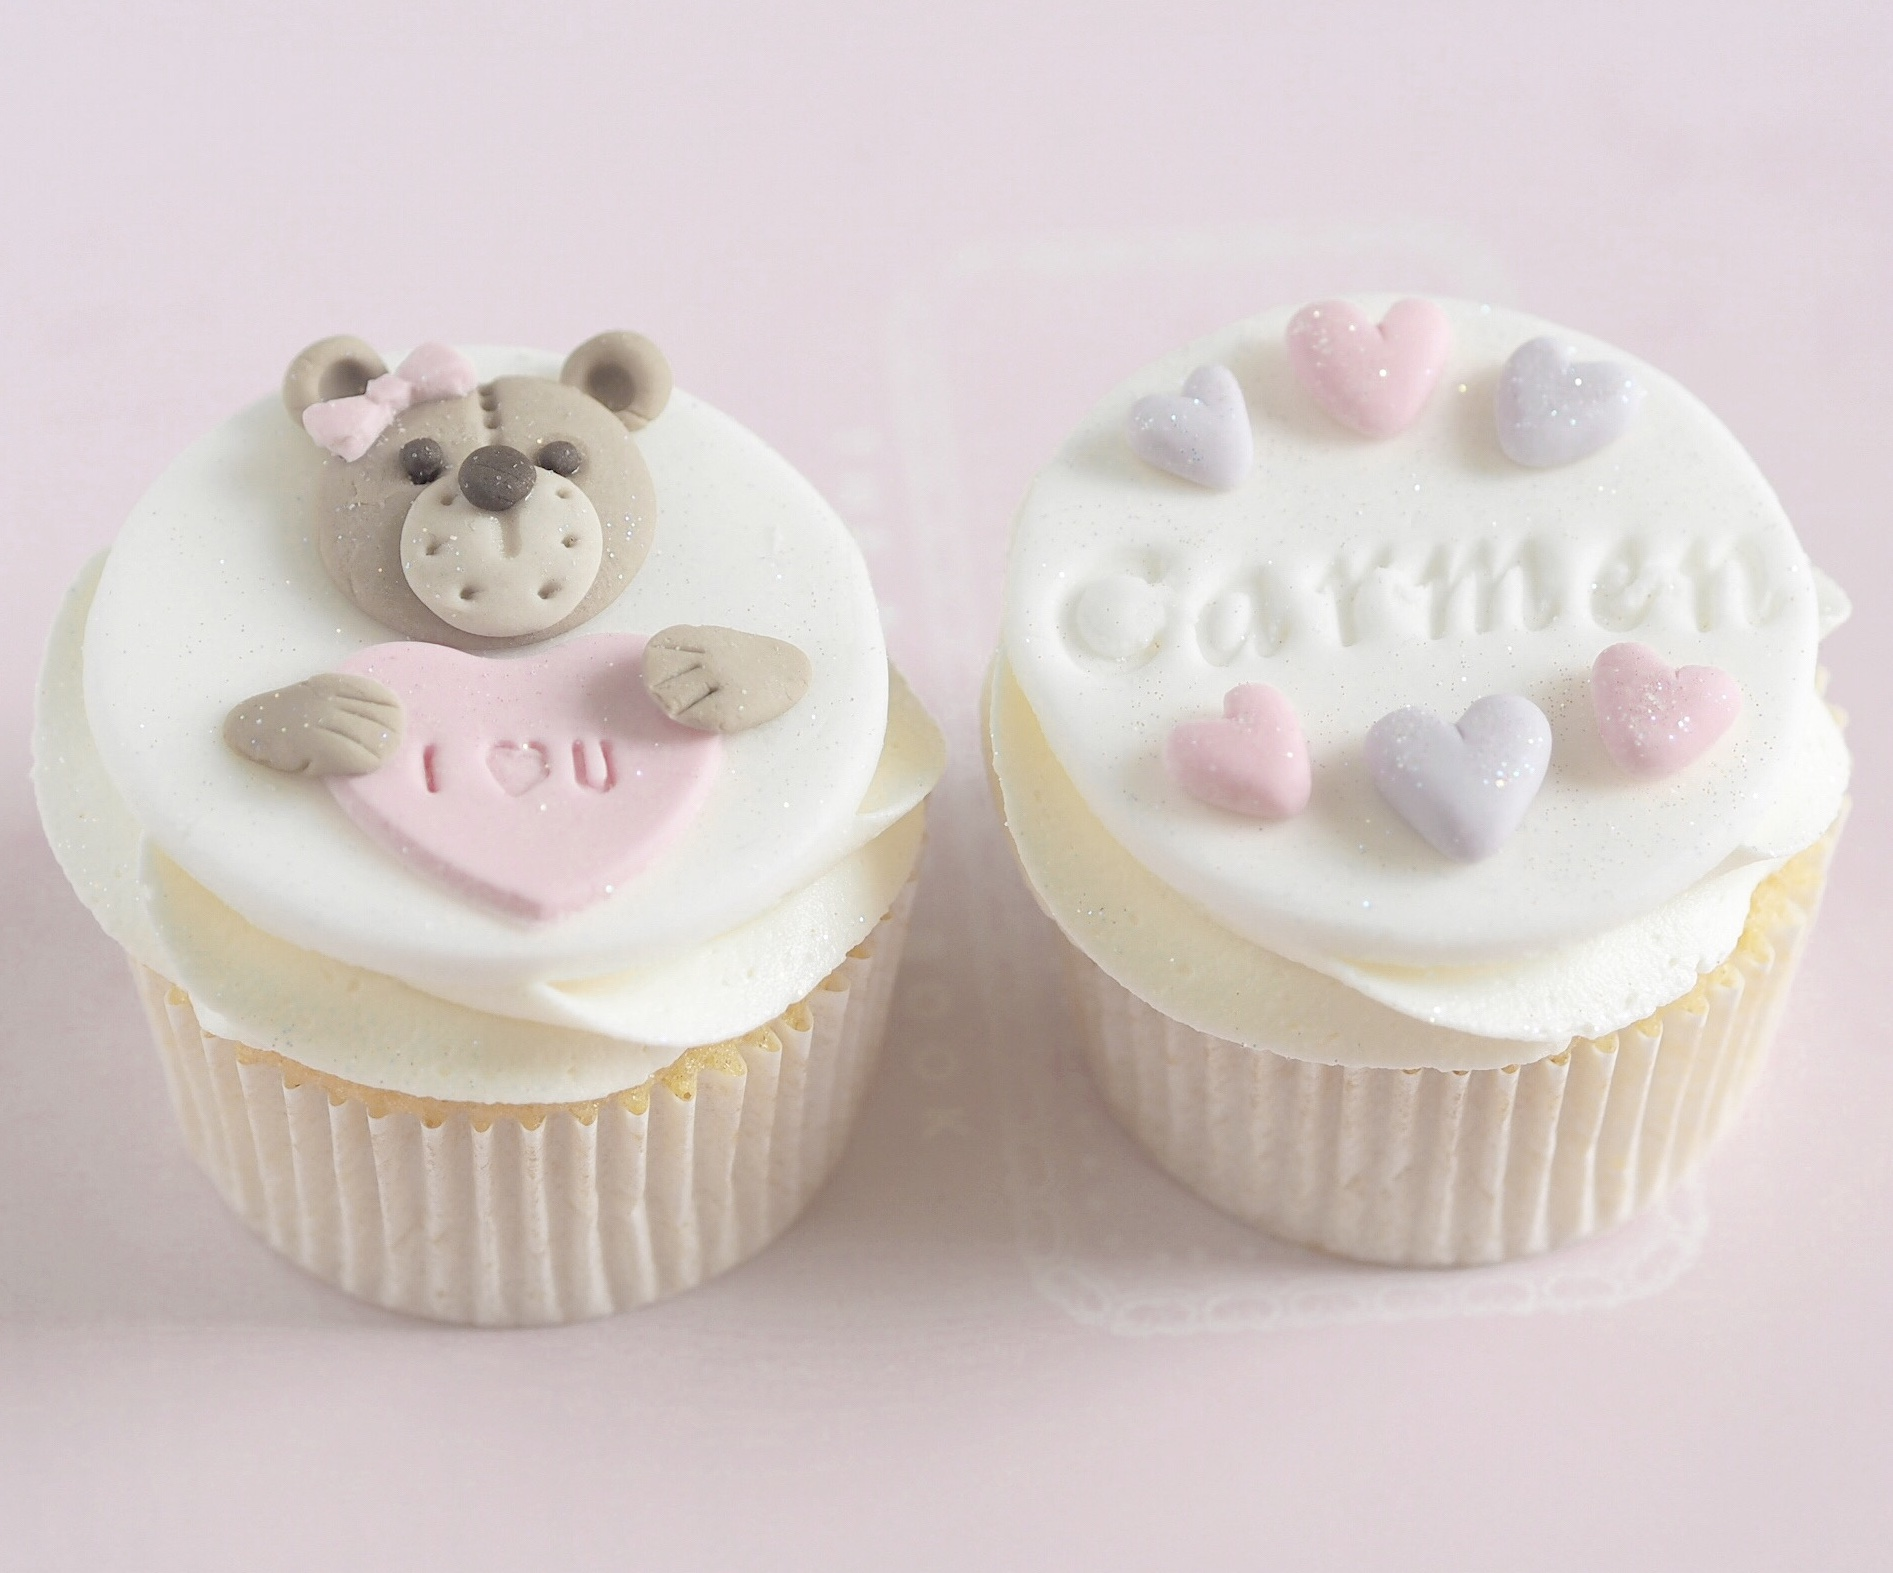 8 Sweet Ideas For Your Valentine's Baking ~ Teddy Bears & Chocolate Boxes Cupcakes